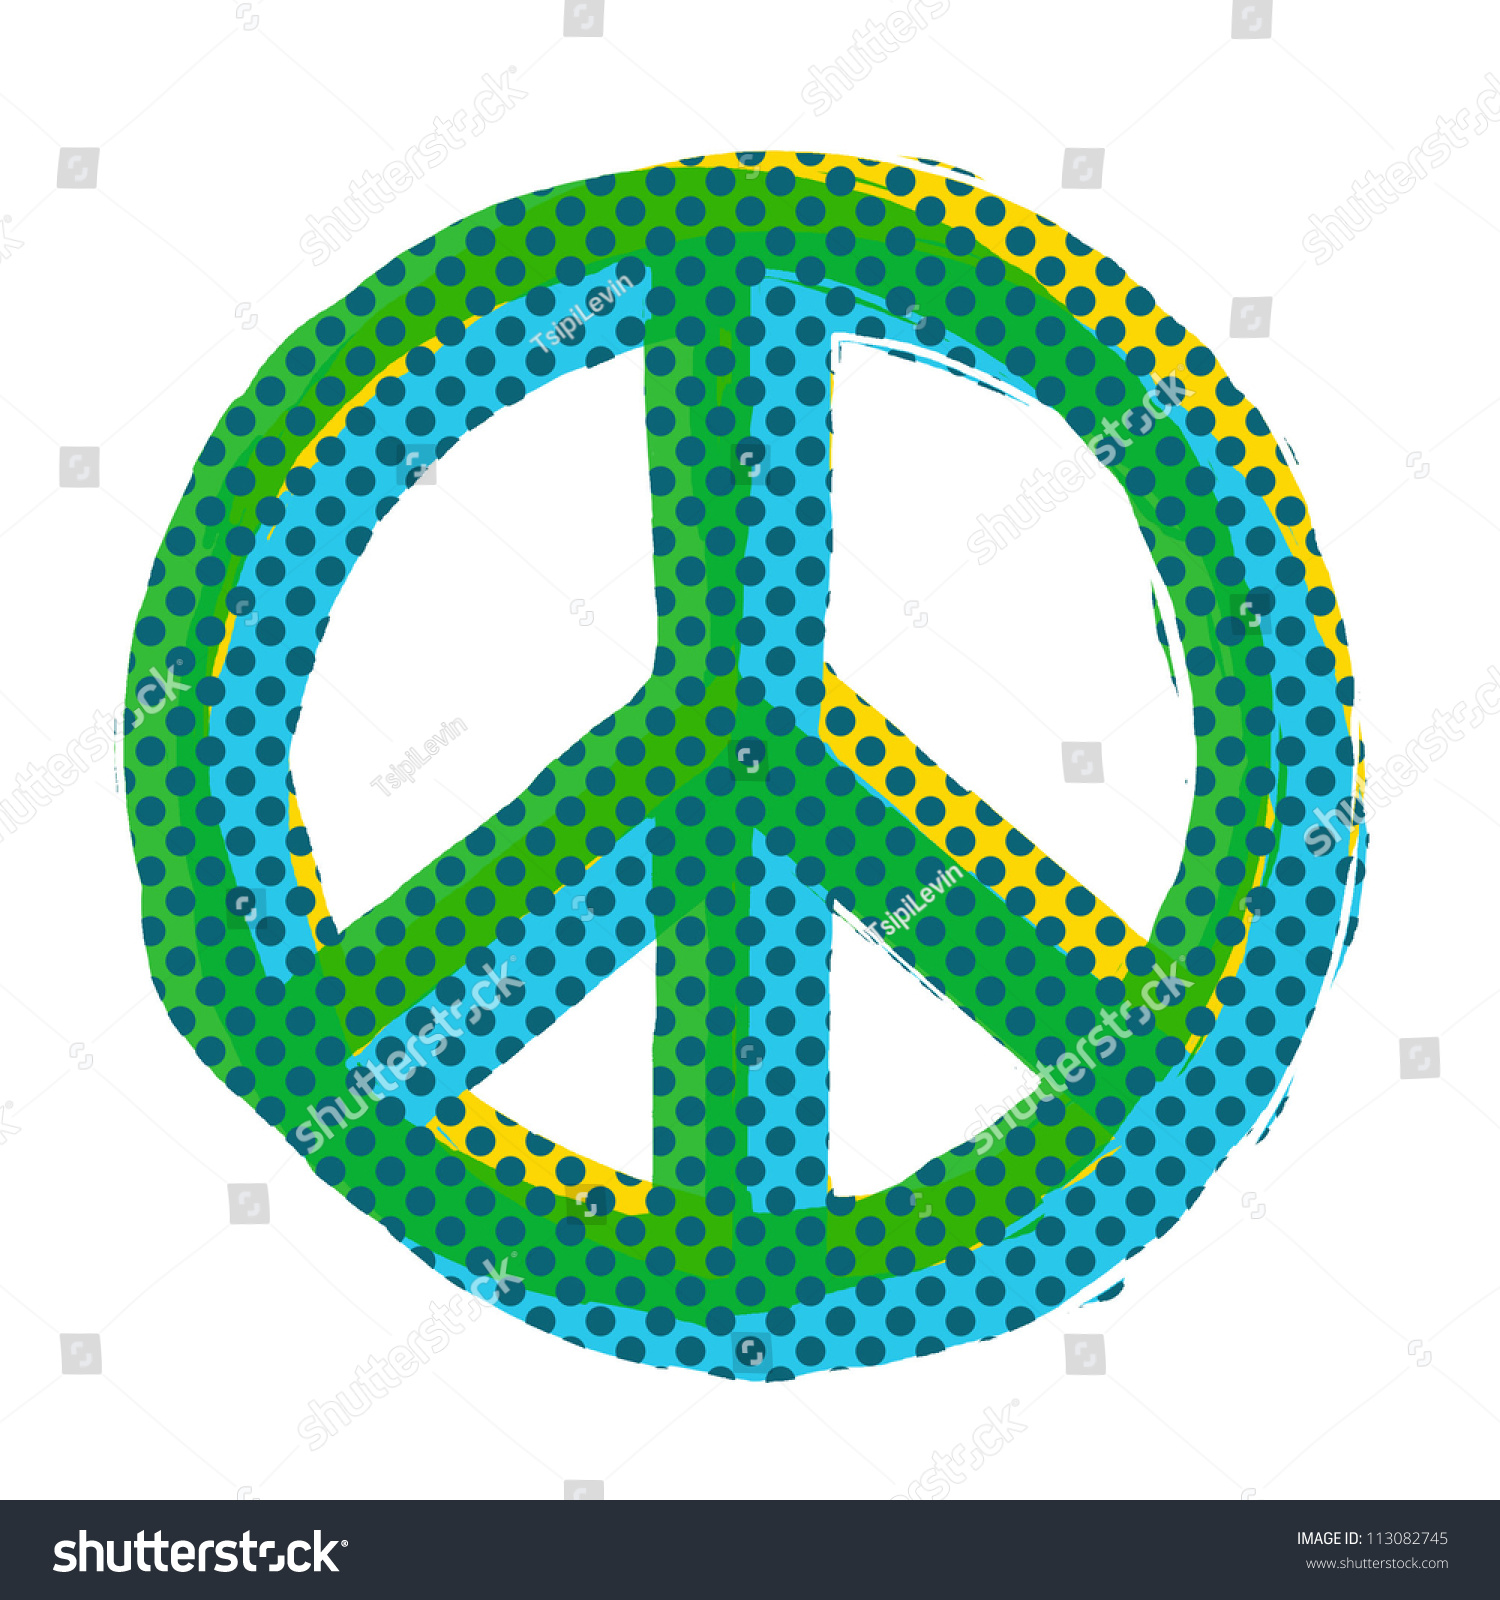 Royalty Free Stock Illustration Of Peace Symbol Pop Art Peace Symbol